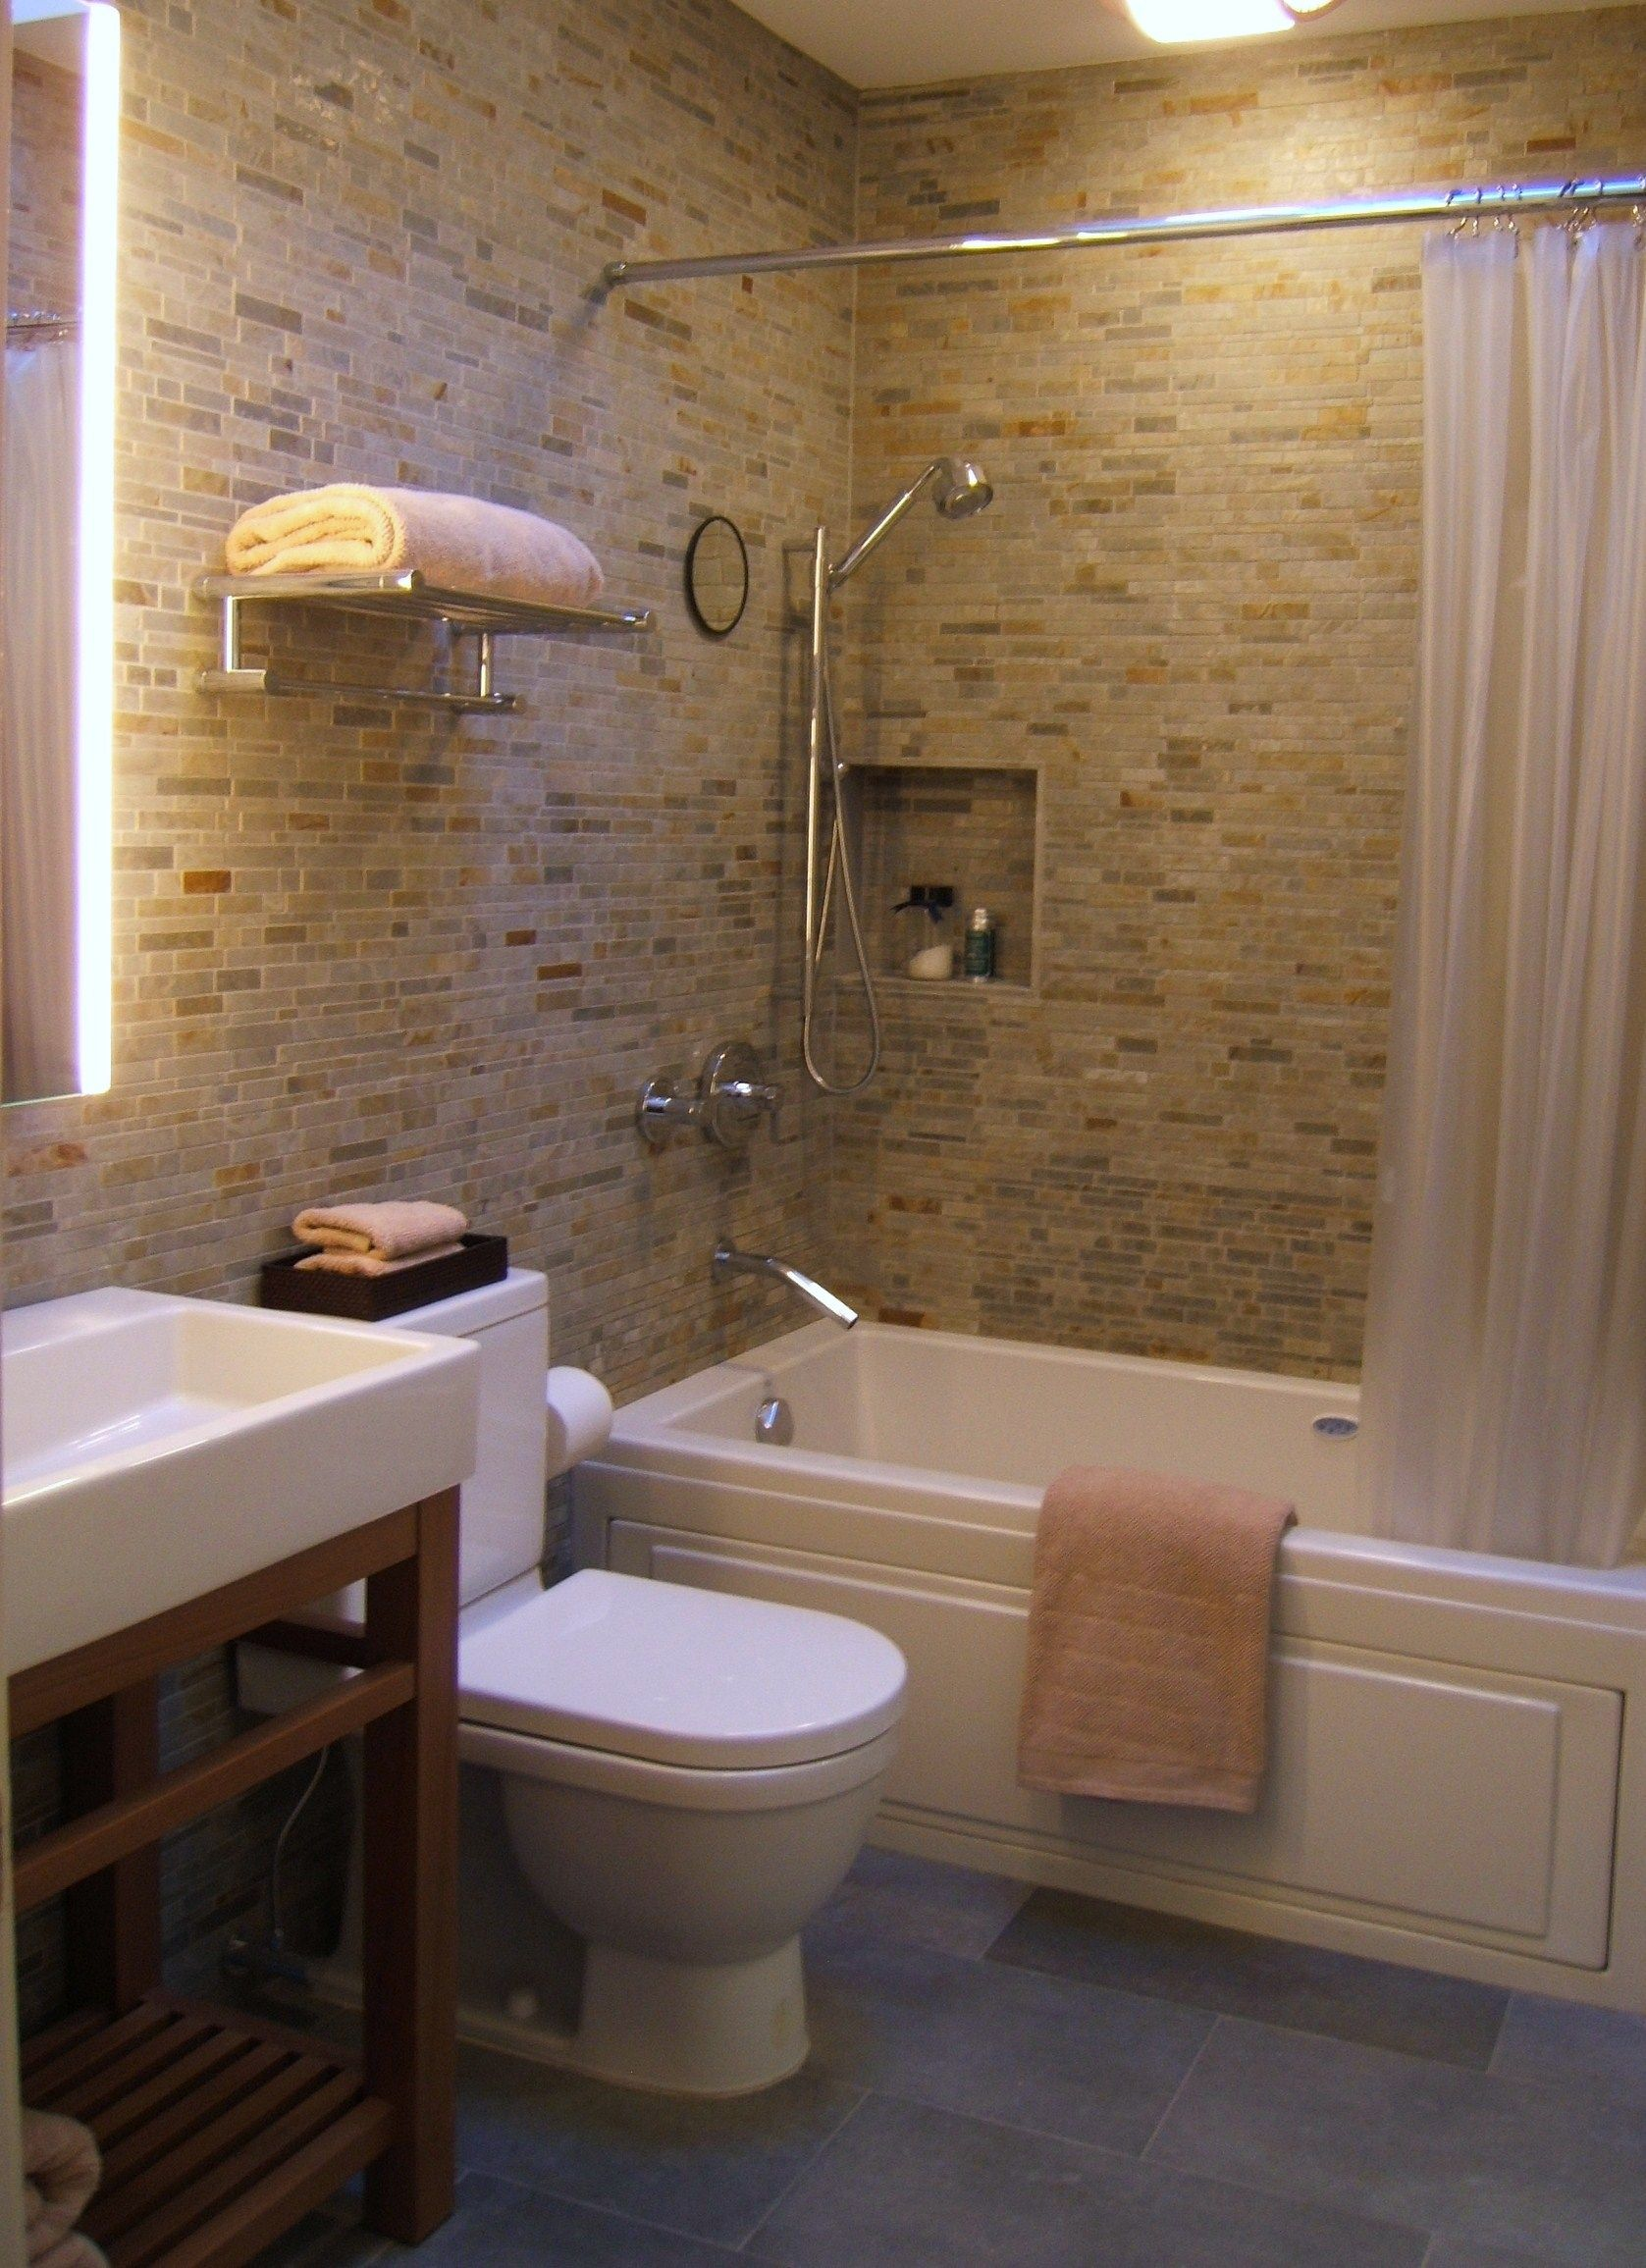 Small bathroom designs south africa small bath for Small bathroom design ideas pictures